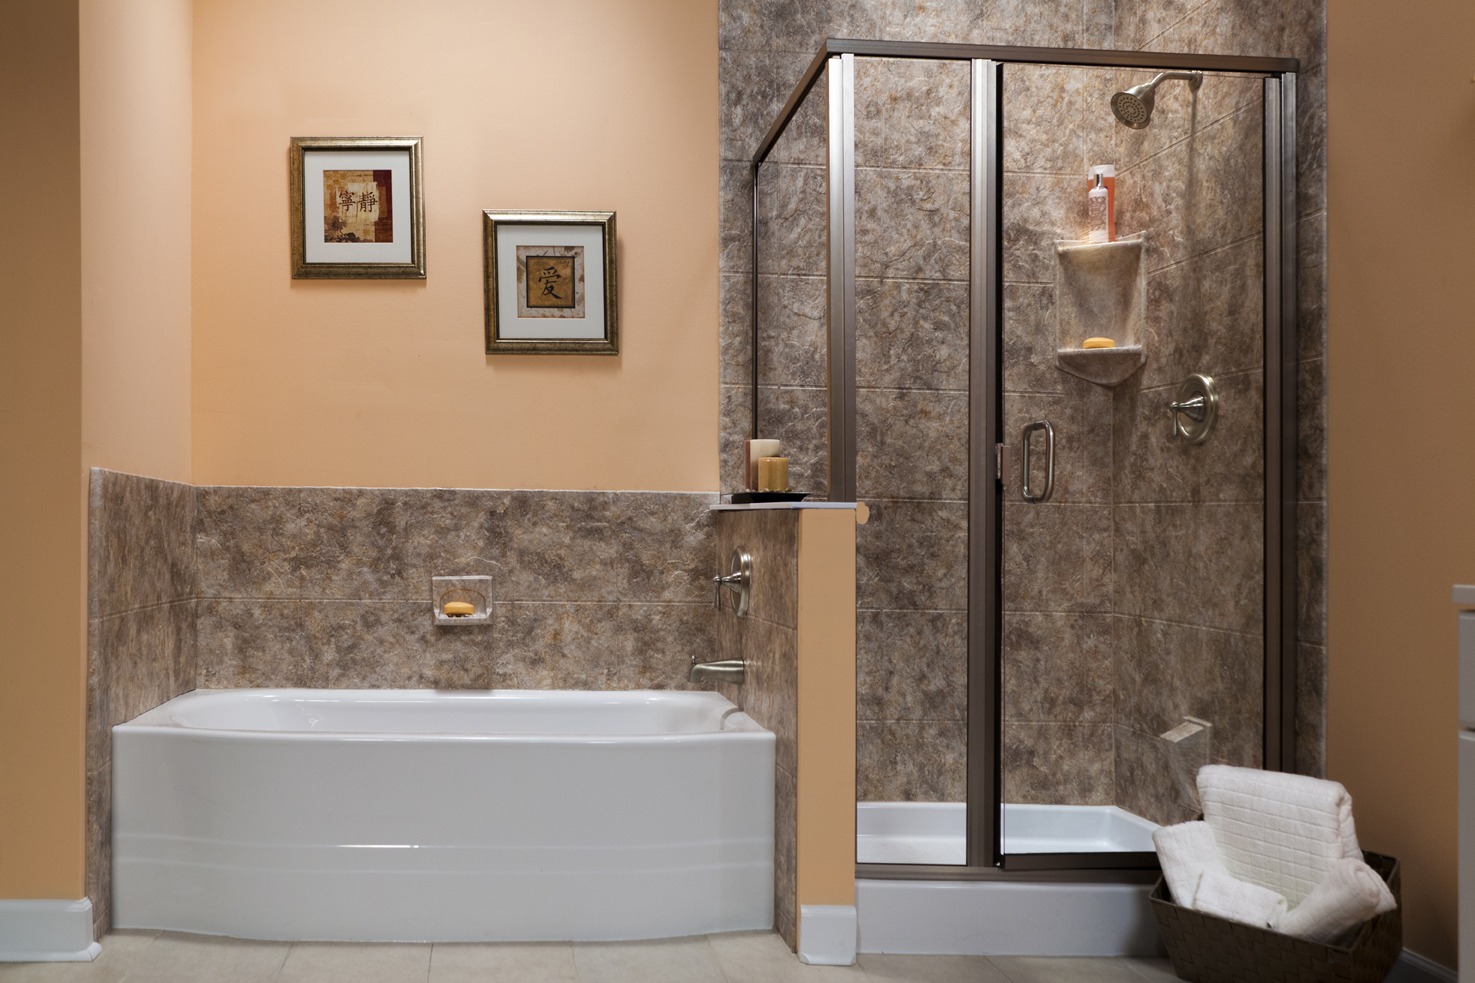 Approach a Professional Company When You Need Bathroom Maintenance Services